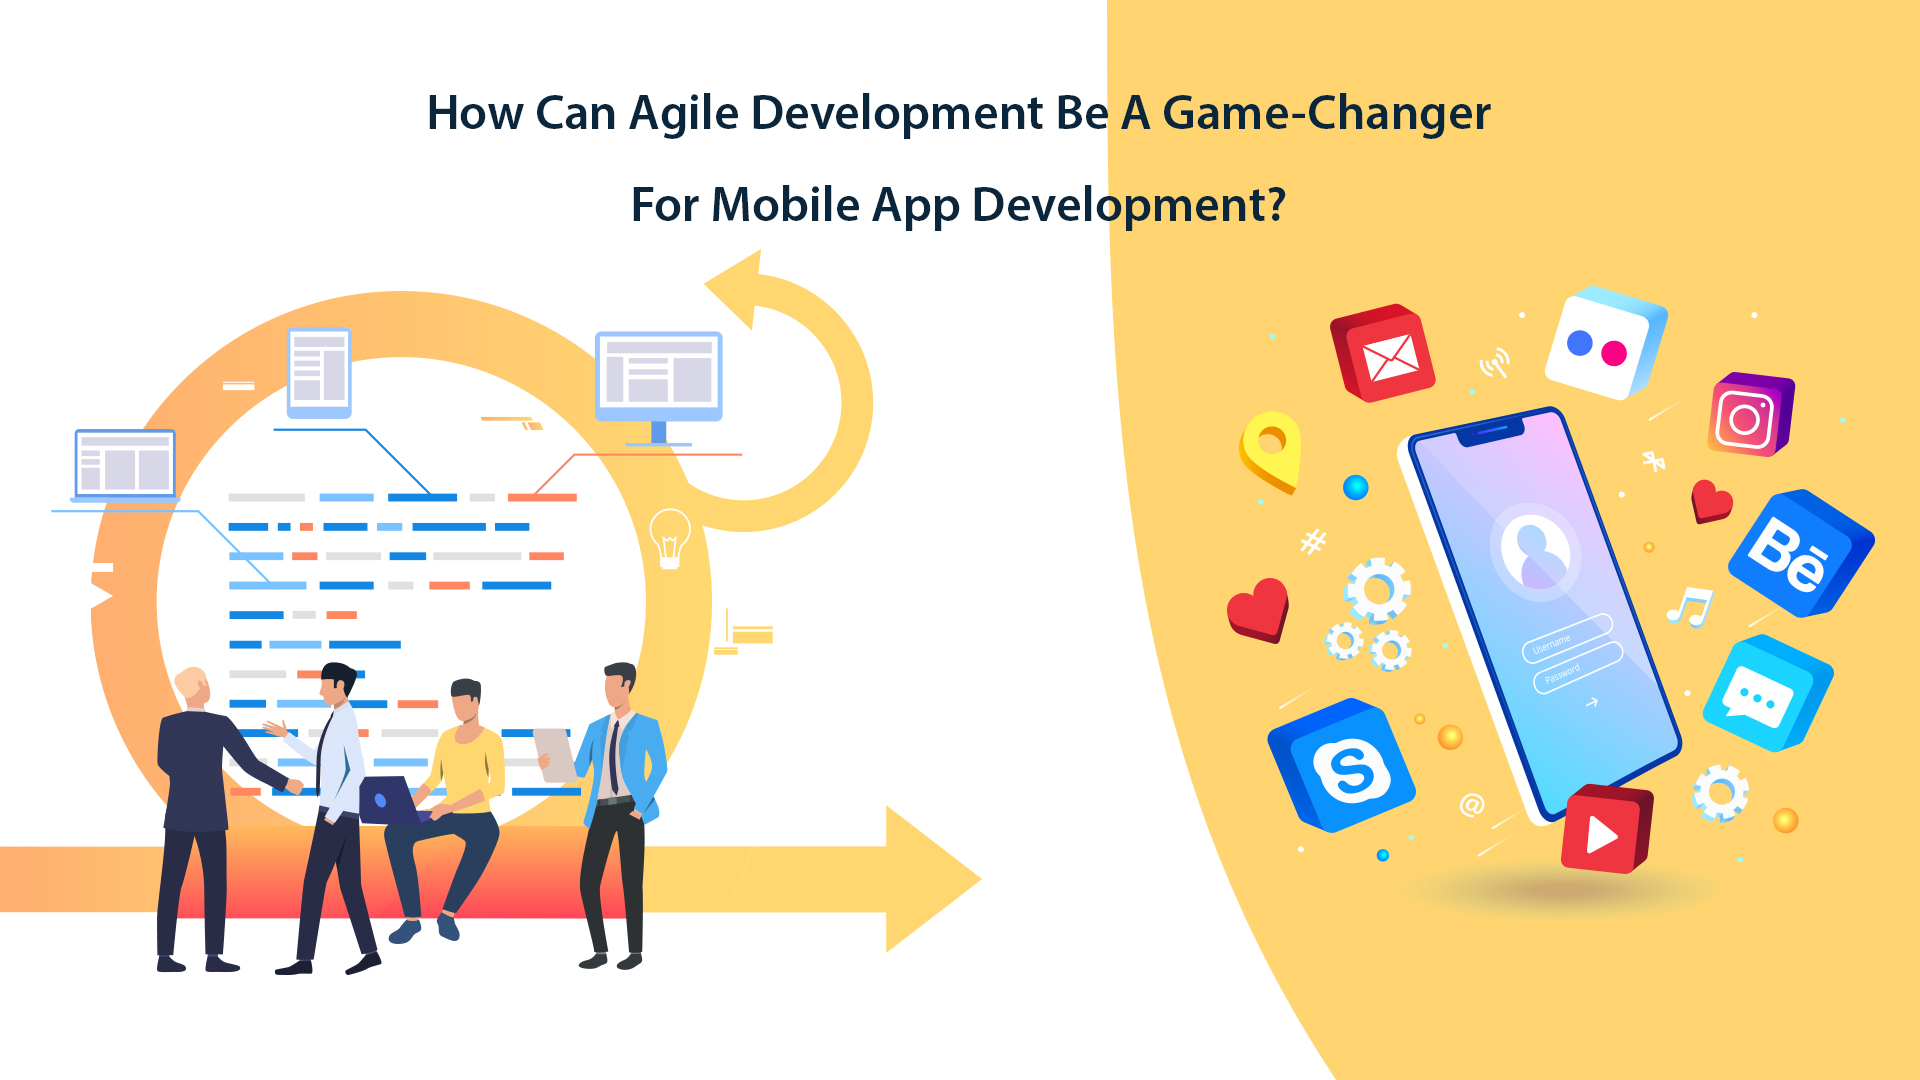 How Can Agile Development Be Game Changer For Mobile App Development